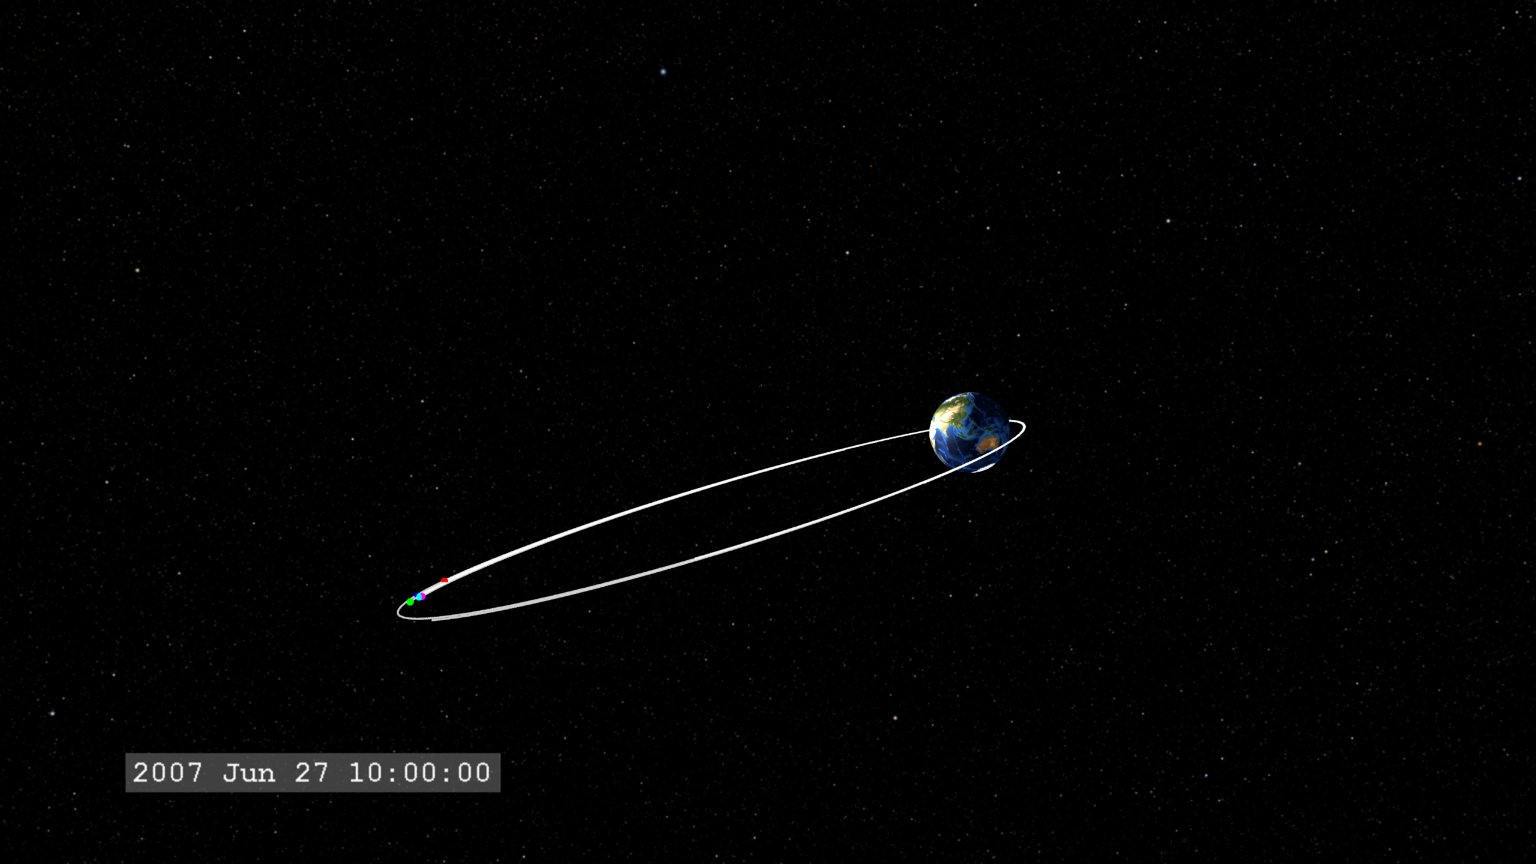 THEMIS explores the Earth's Bow Shock